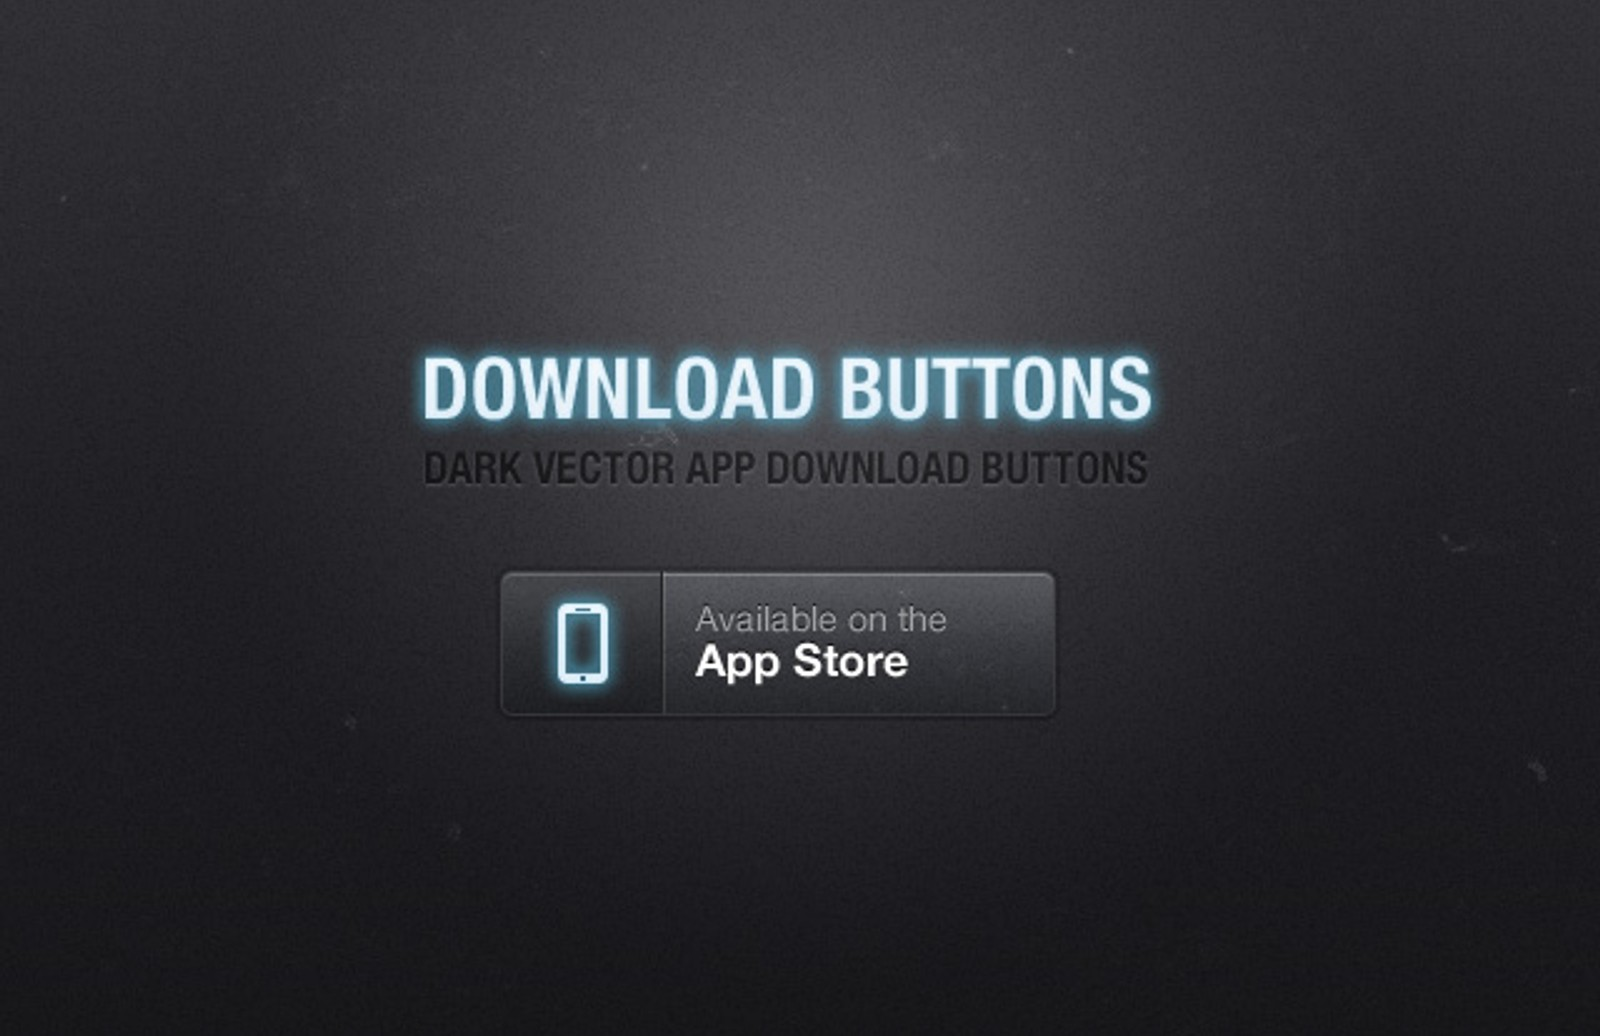 Dark  App  Download  Buttons  Preview1